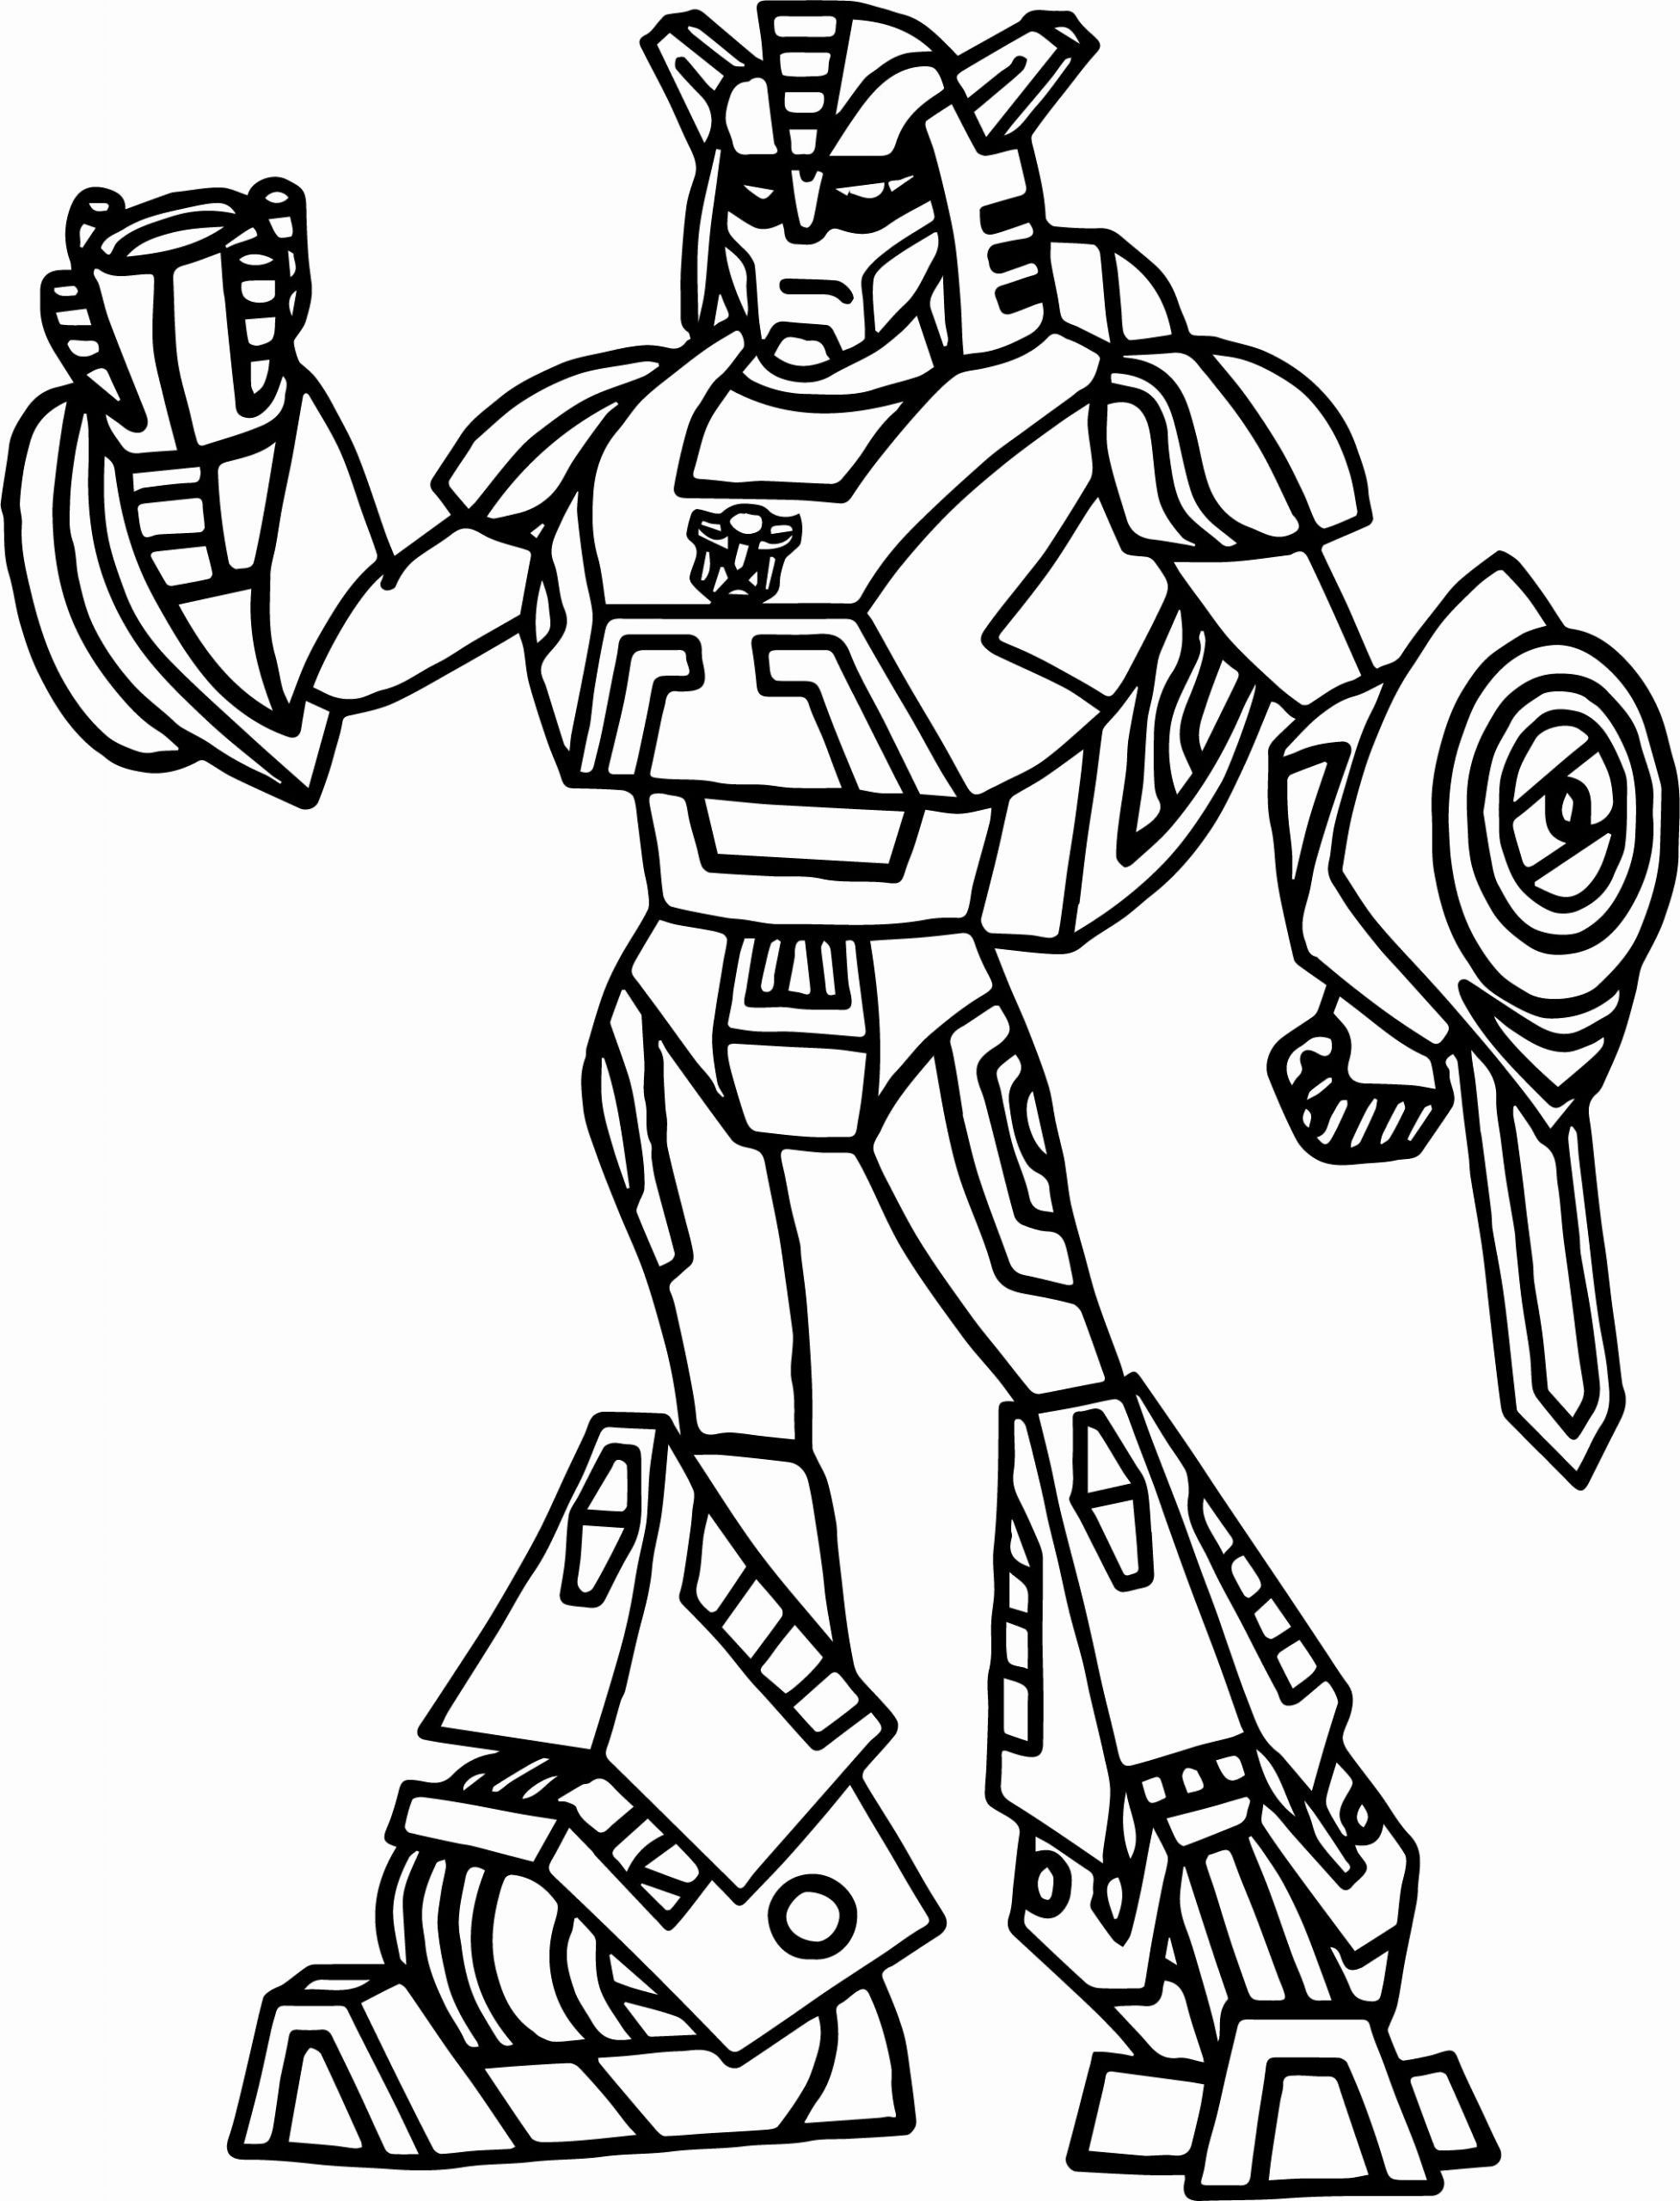 Transformer Bumble Bee Coloring Page Lovely 33 Transformers Coloring Pages Bumblebee Transforme Truck Coloring Pages Coloring Pages For Boys Bee Coloring Pages